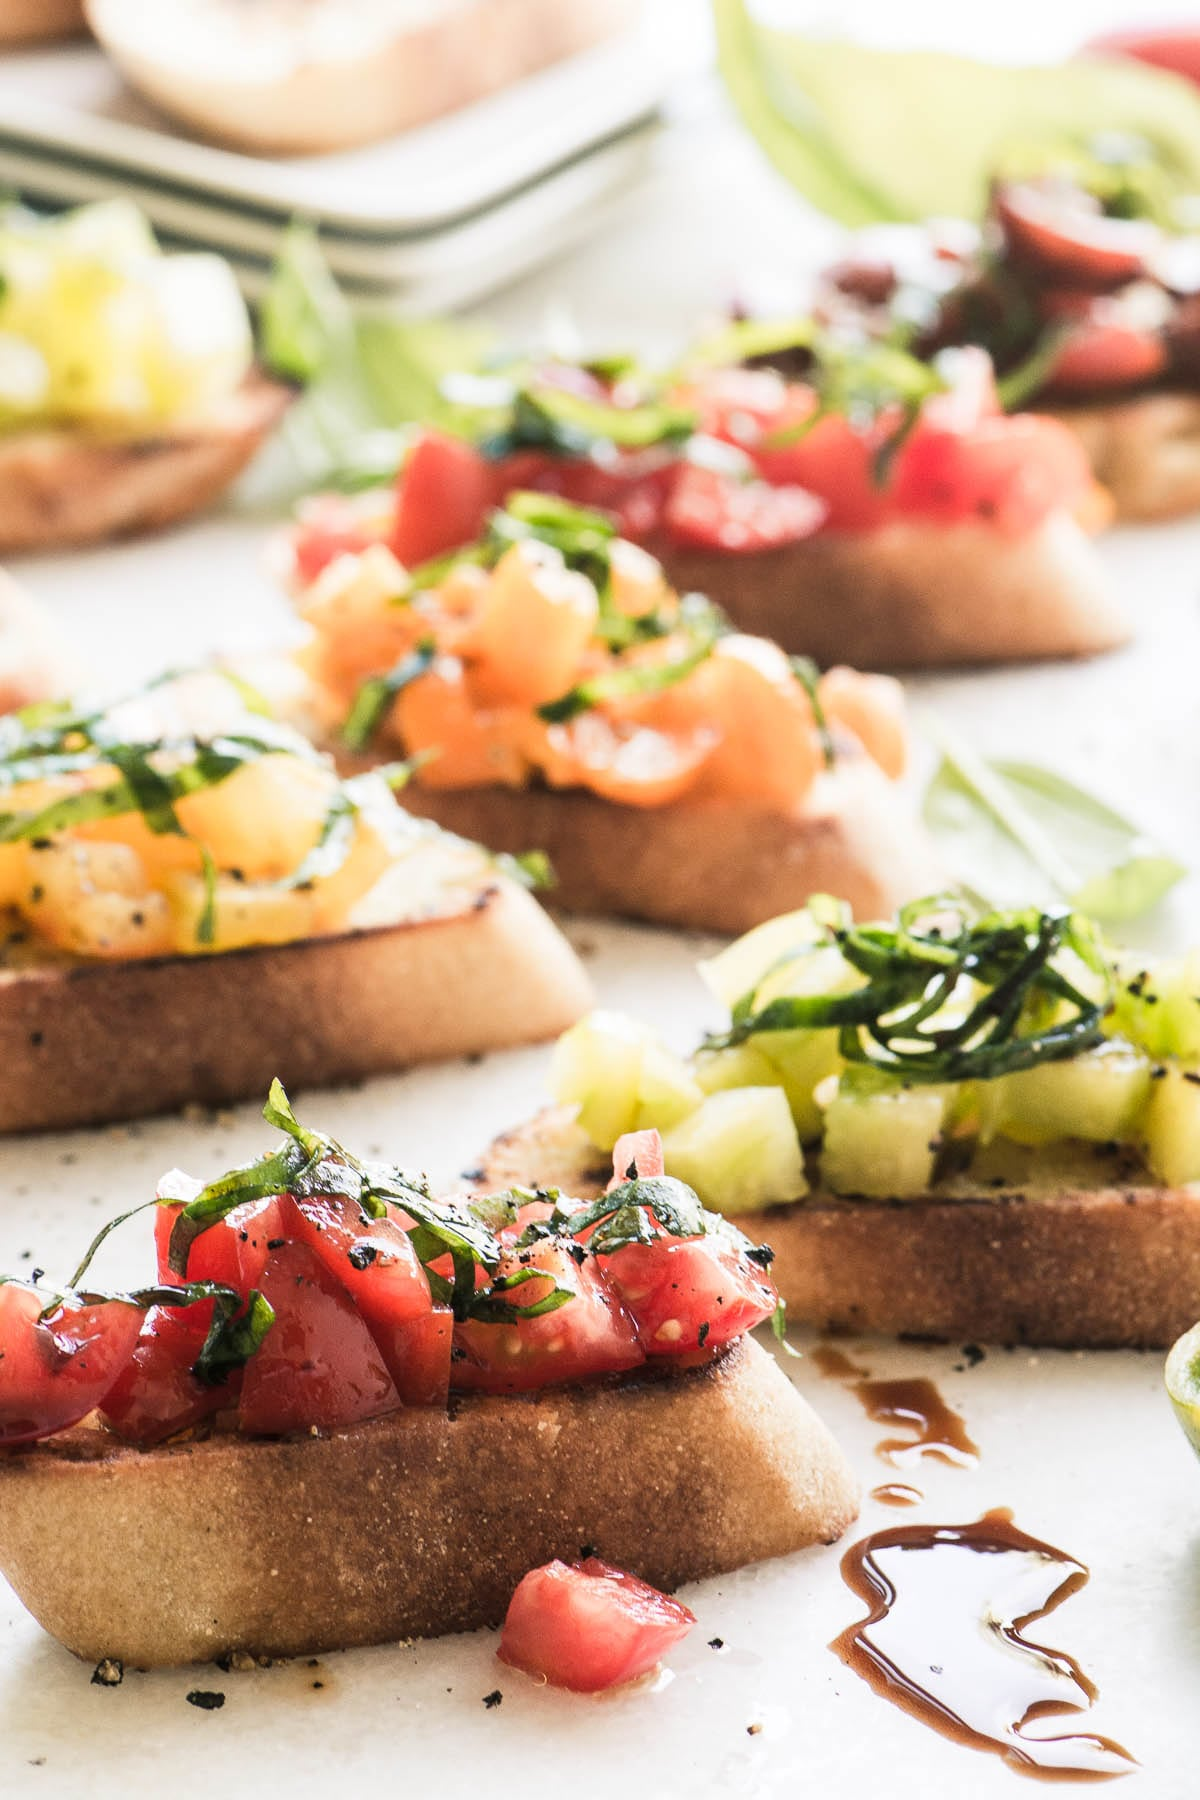 Best Heirloom Tomato Recipes ~ Heirloom Tomato Bruschetta on a white surface